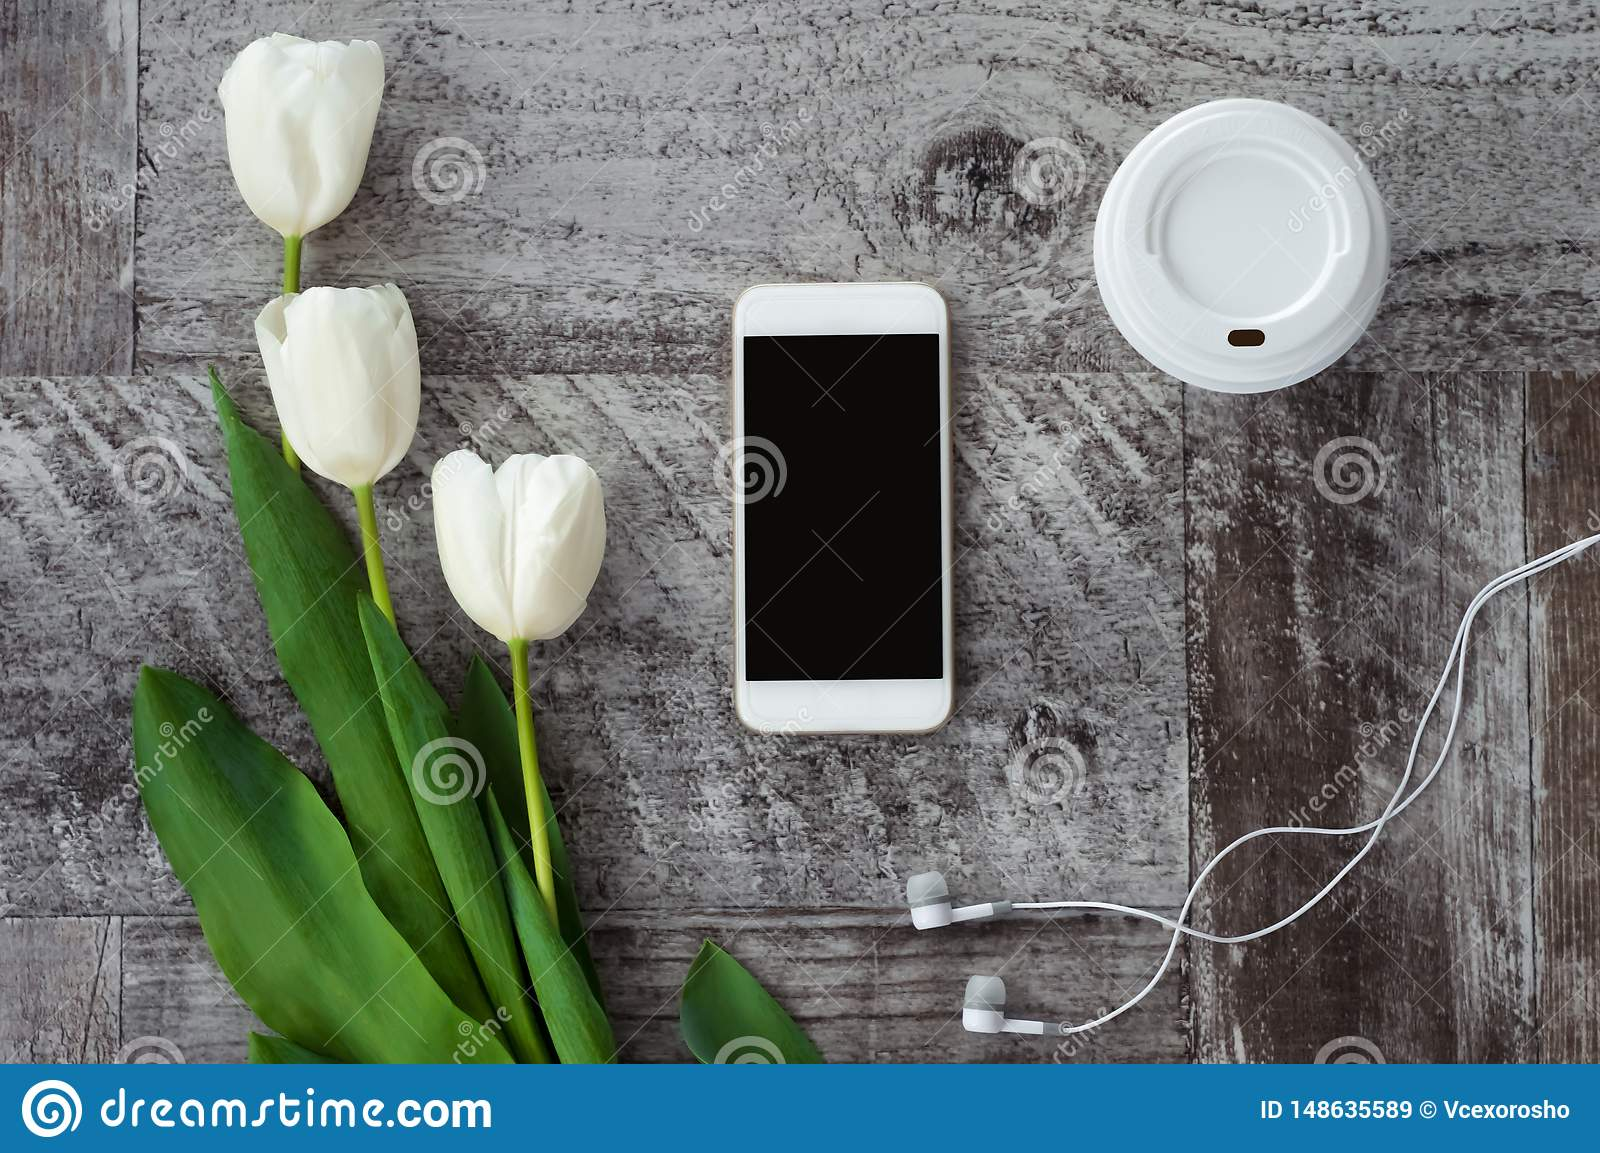 White phone with headphones, coffee and flowers are on the table. Work at home. Freelance